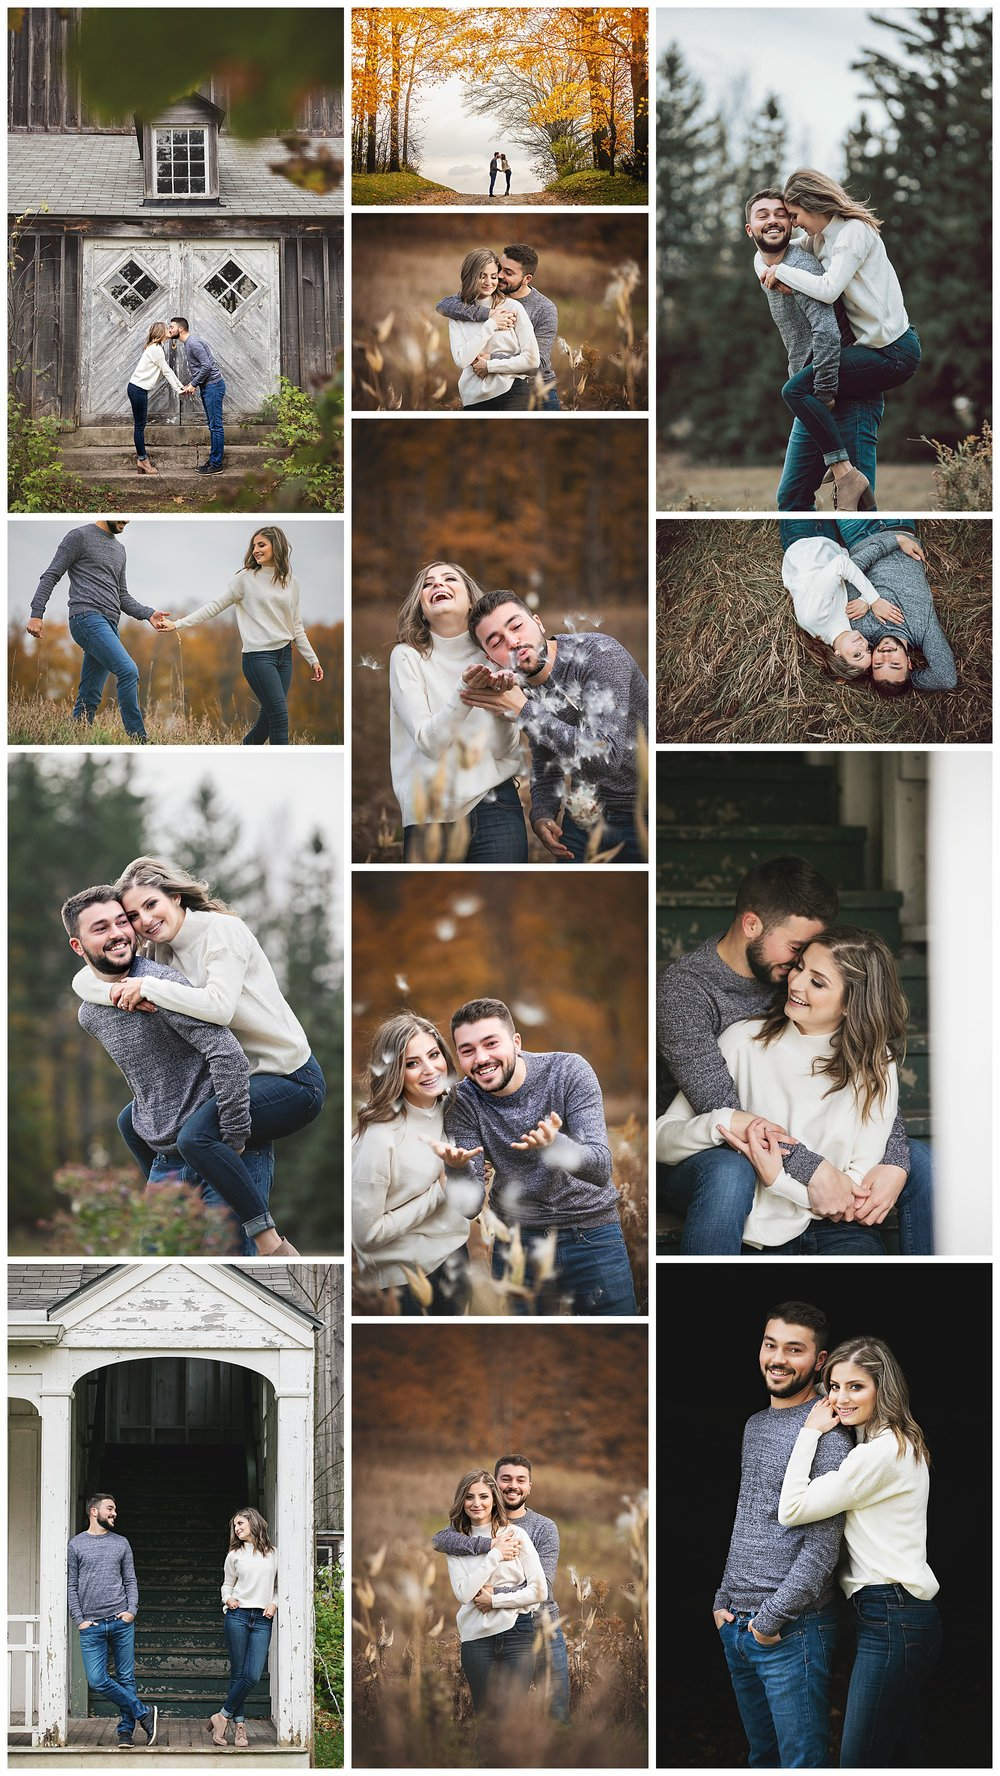 Scotsdale Farm, Halton Hills, Georgetown, Ontario engagement photography by VanDaele & Russell